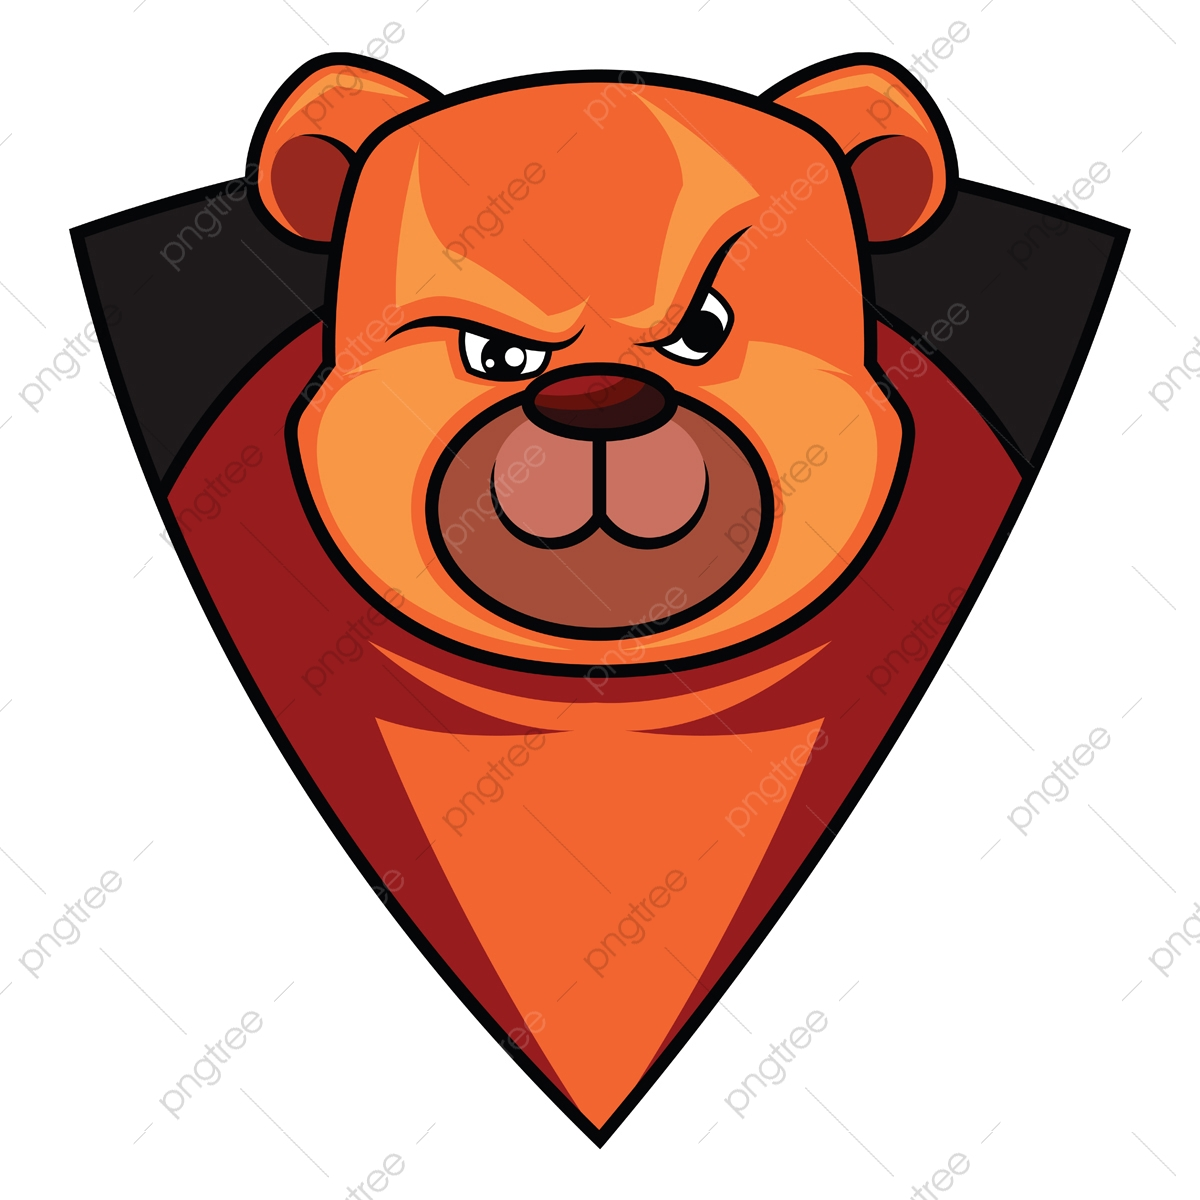 Gaming Logo Of A Bear Illustration Vector On White Background Animal Logo Game Png And Vector With Transparent Background For Free Download